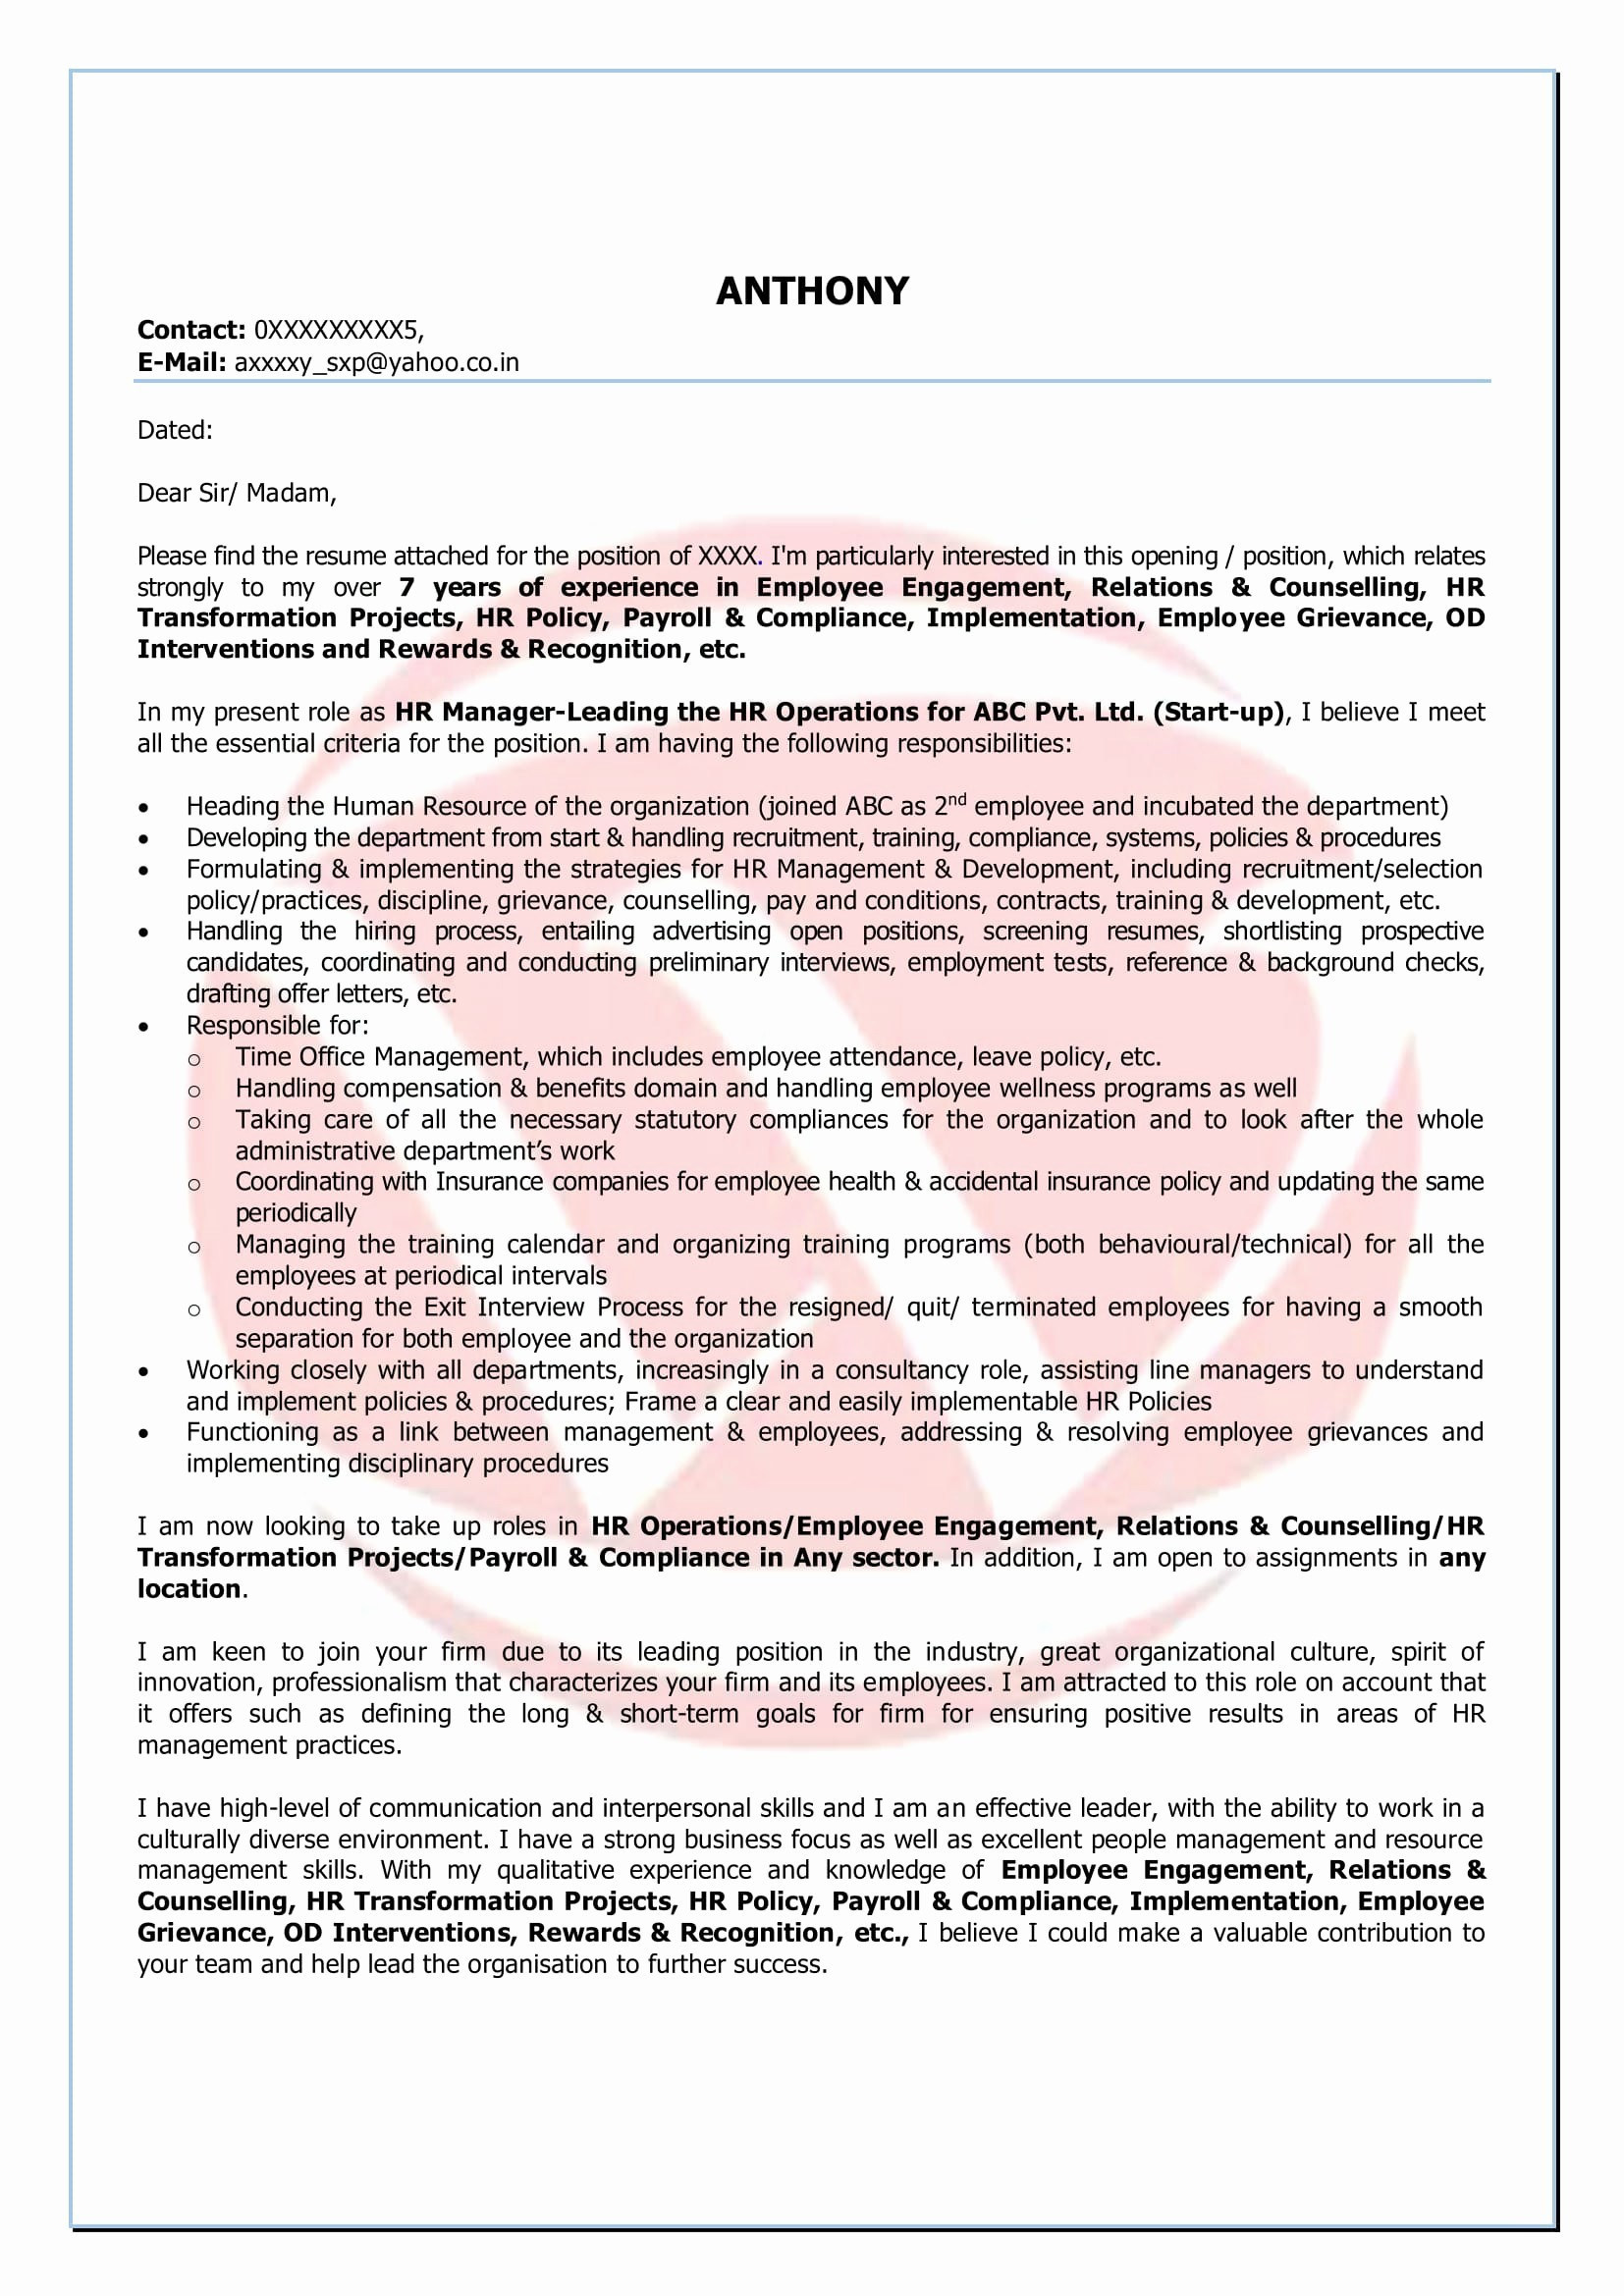 Mergers and Inquisitions Resume Template - Mergers and Inquisitions Resume Template Inspirationa Mergers and